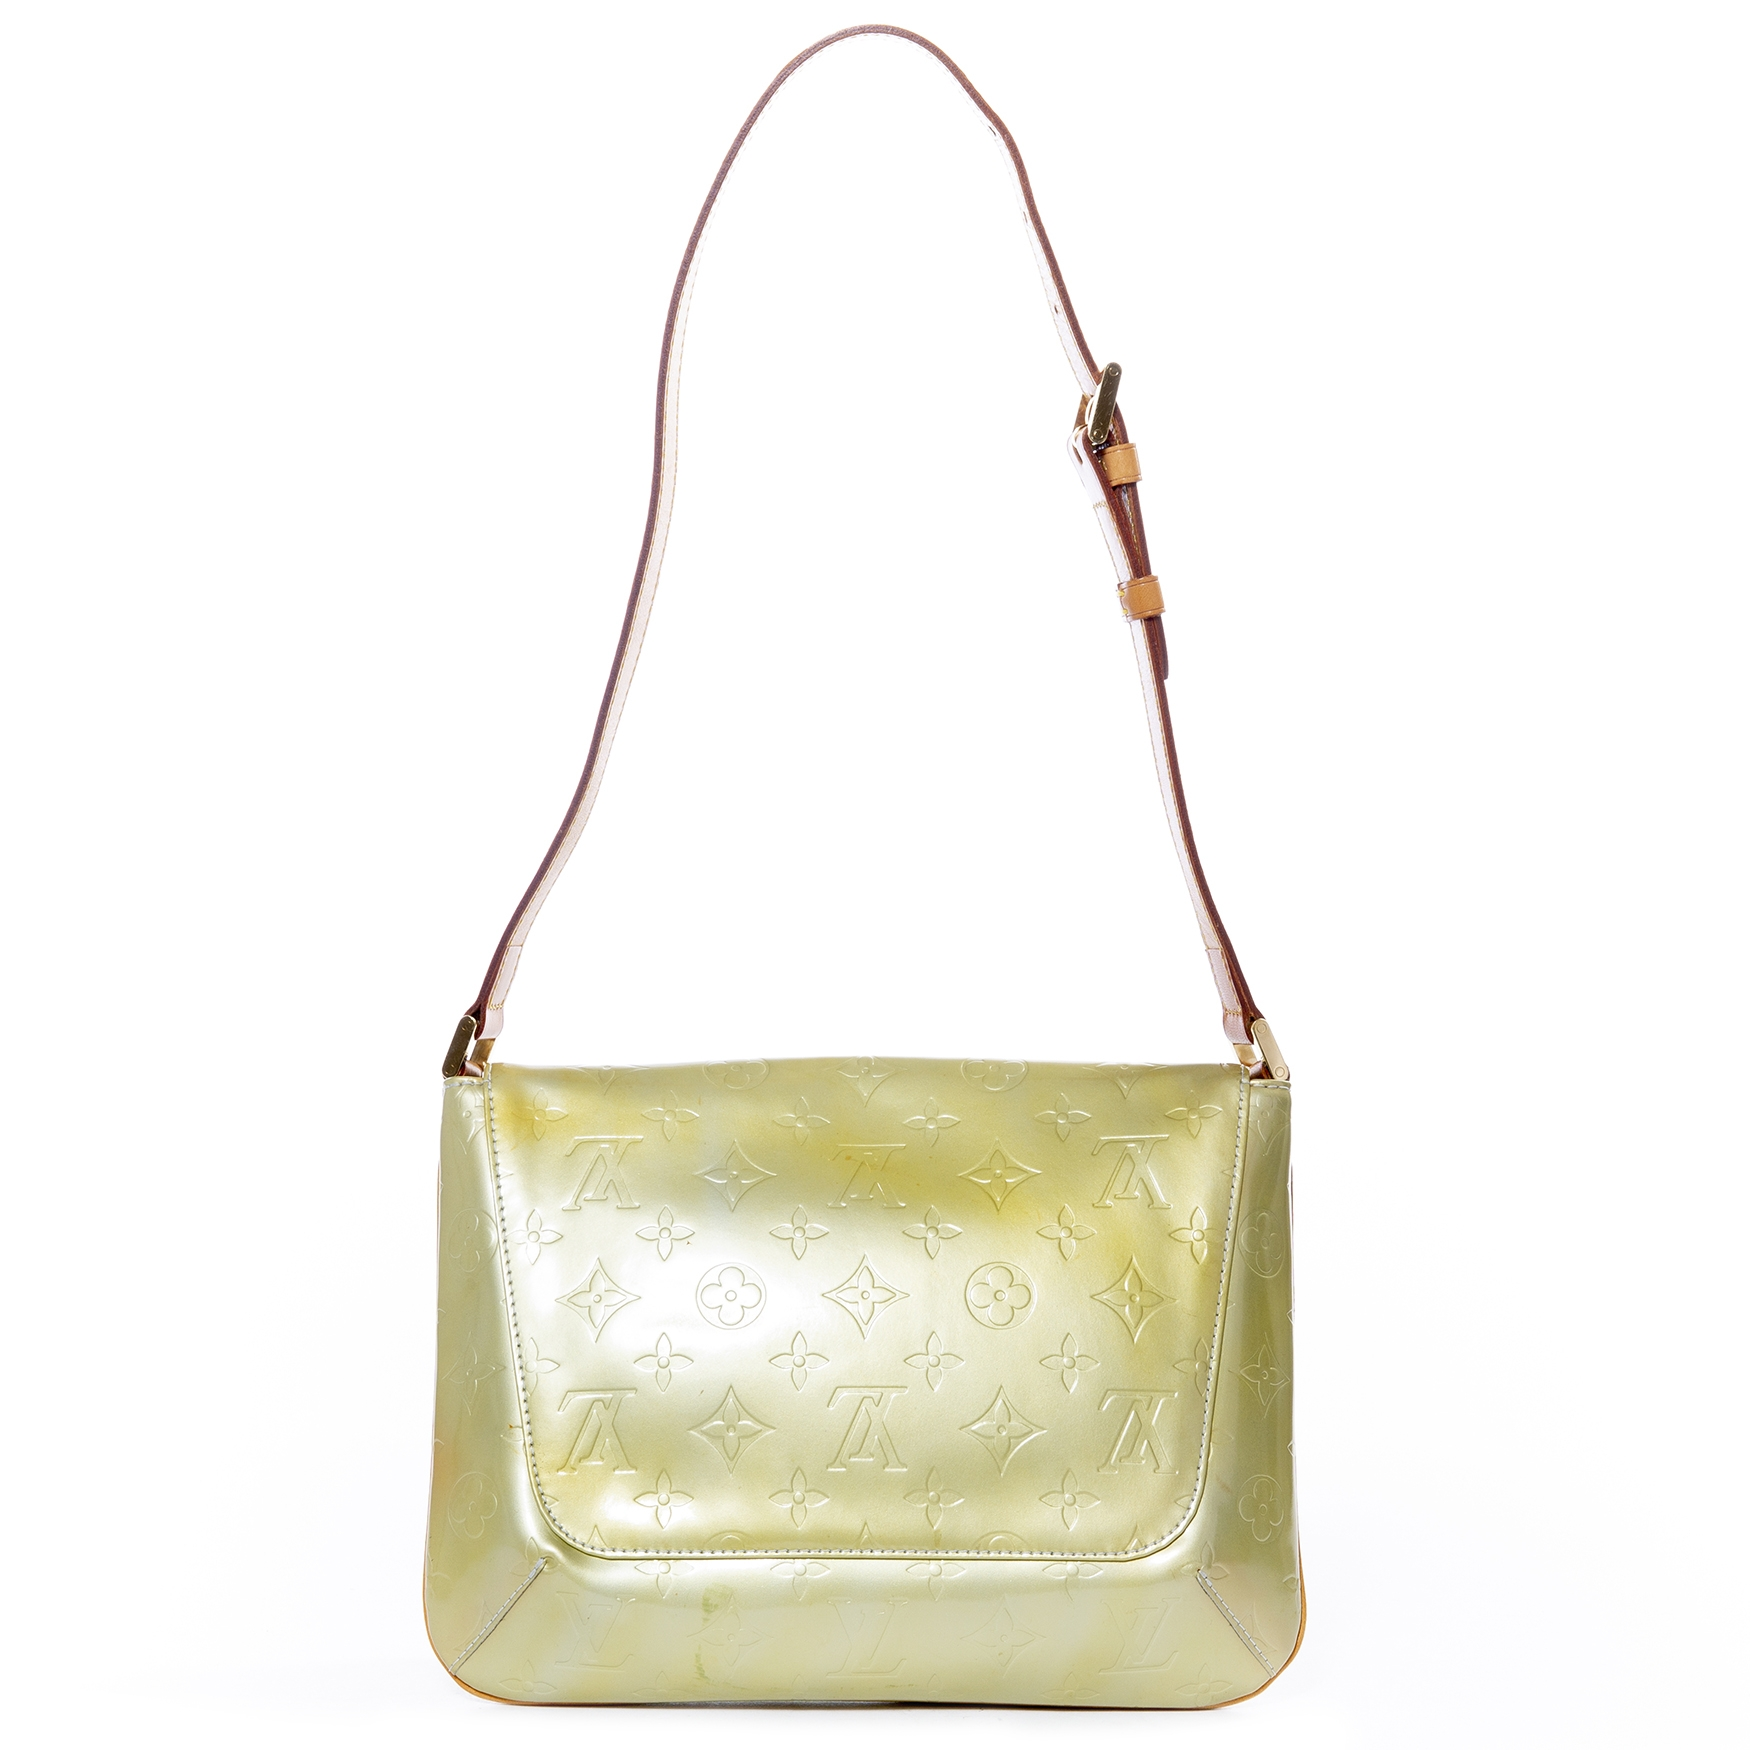 louis vuitton yellow monogram vernis thompson street bag now for sale at labellov vintage fashion webshop belgium